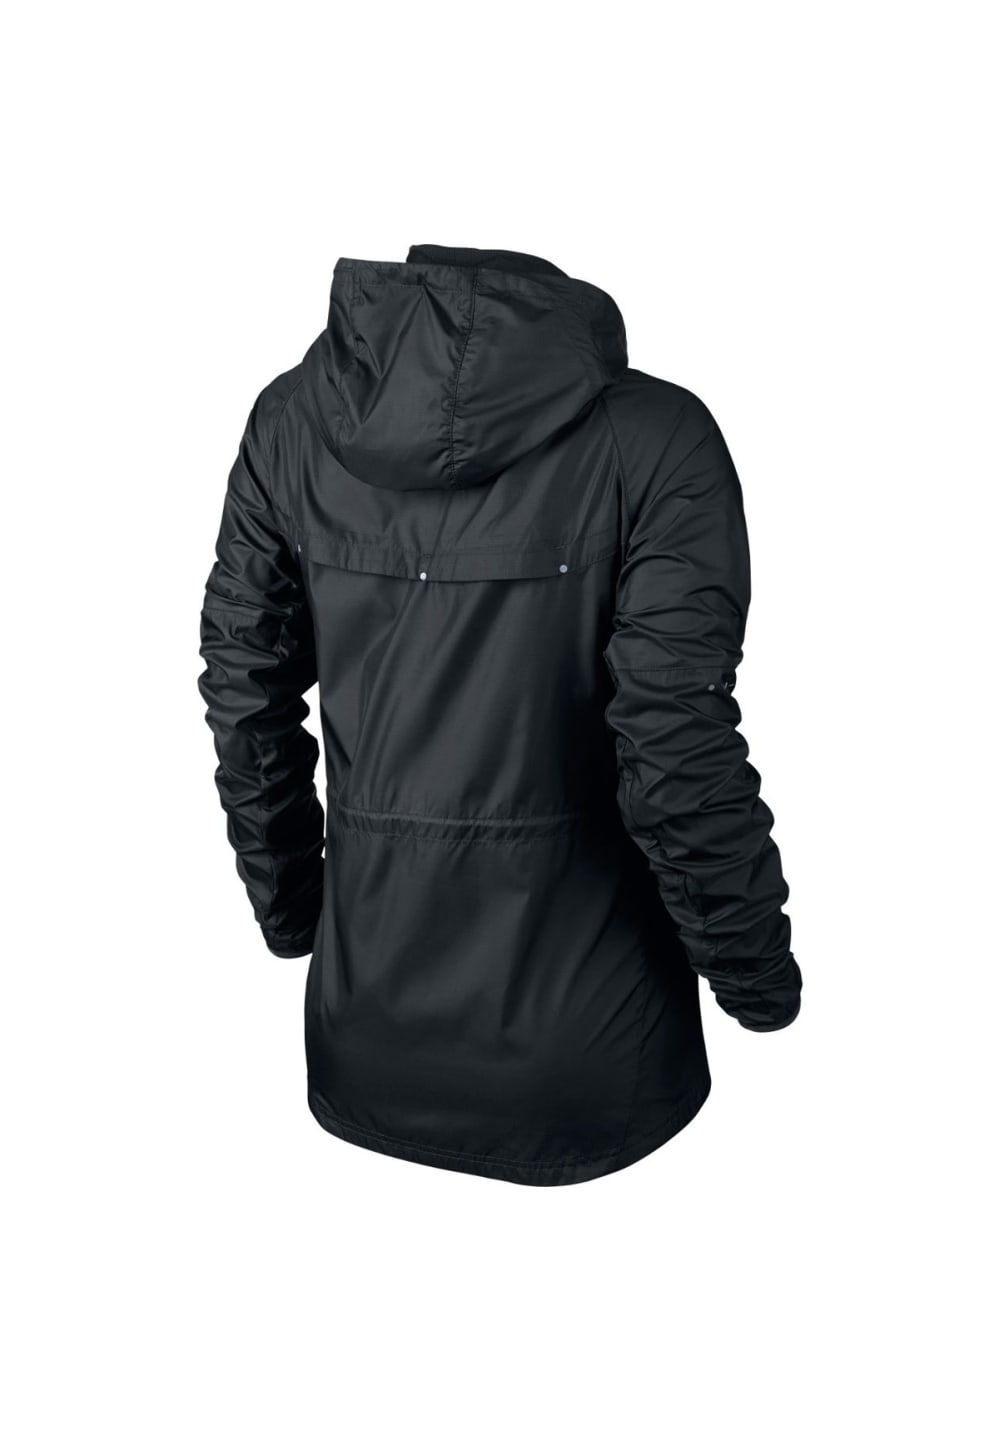 721b5062ab0f ... Nike Vapor Jacket - Running jackets for Women - Black. Back to  Overview. 1  2. Previous